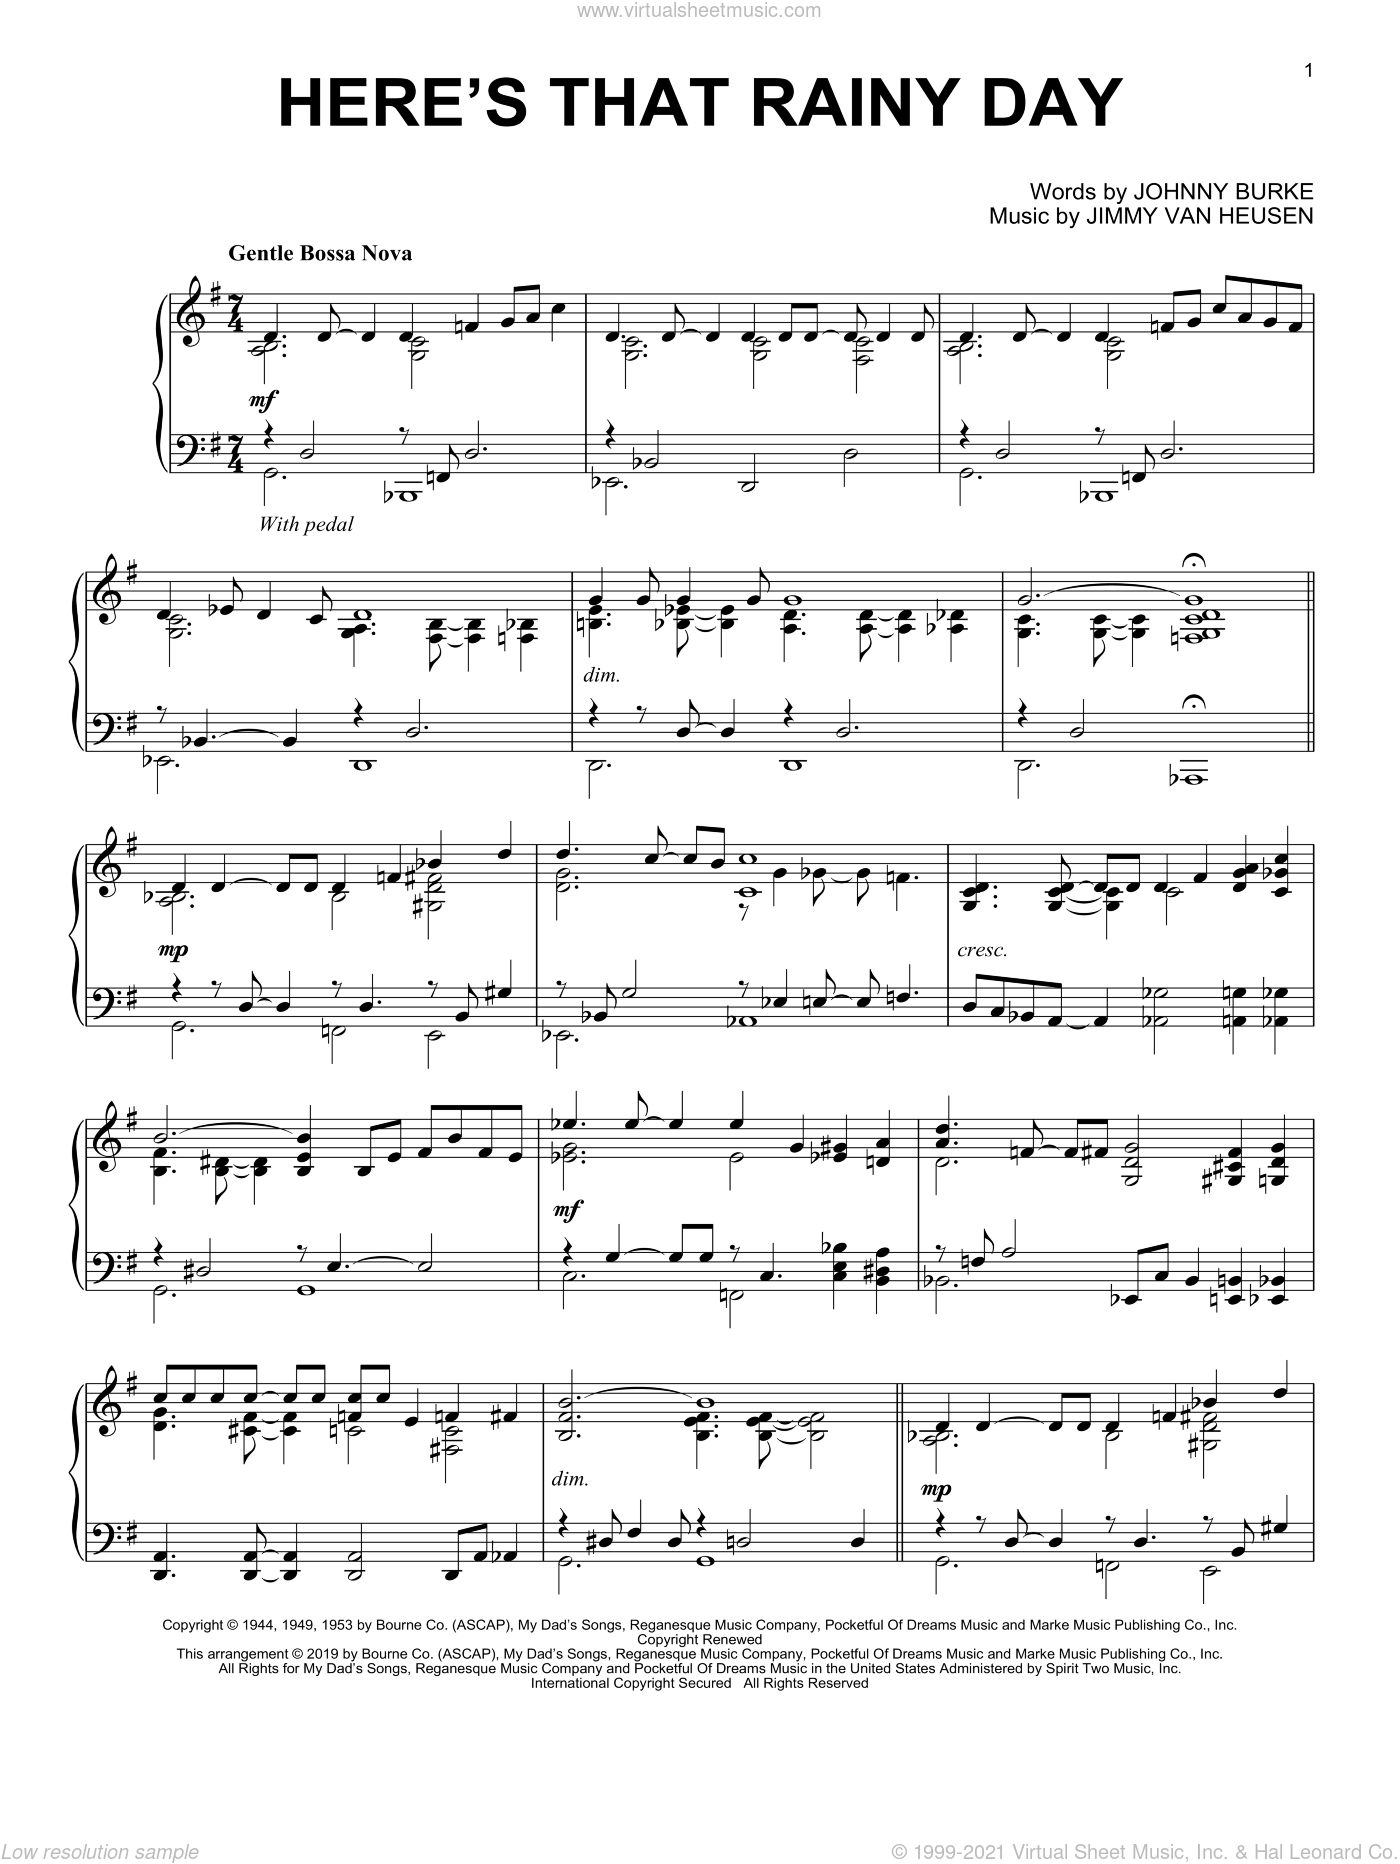 Here's That Rainy Day sheet music for piano solo by Jimmy Van Heusen and John Burke, intermediate skill level